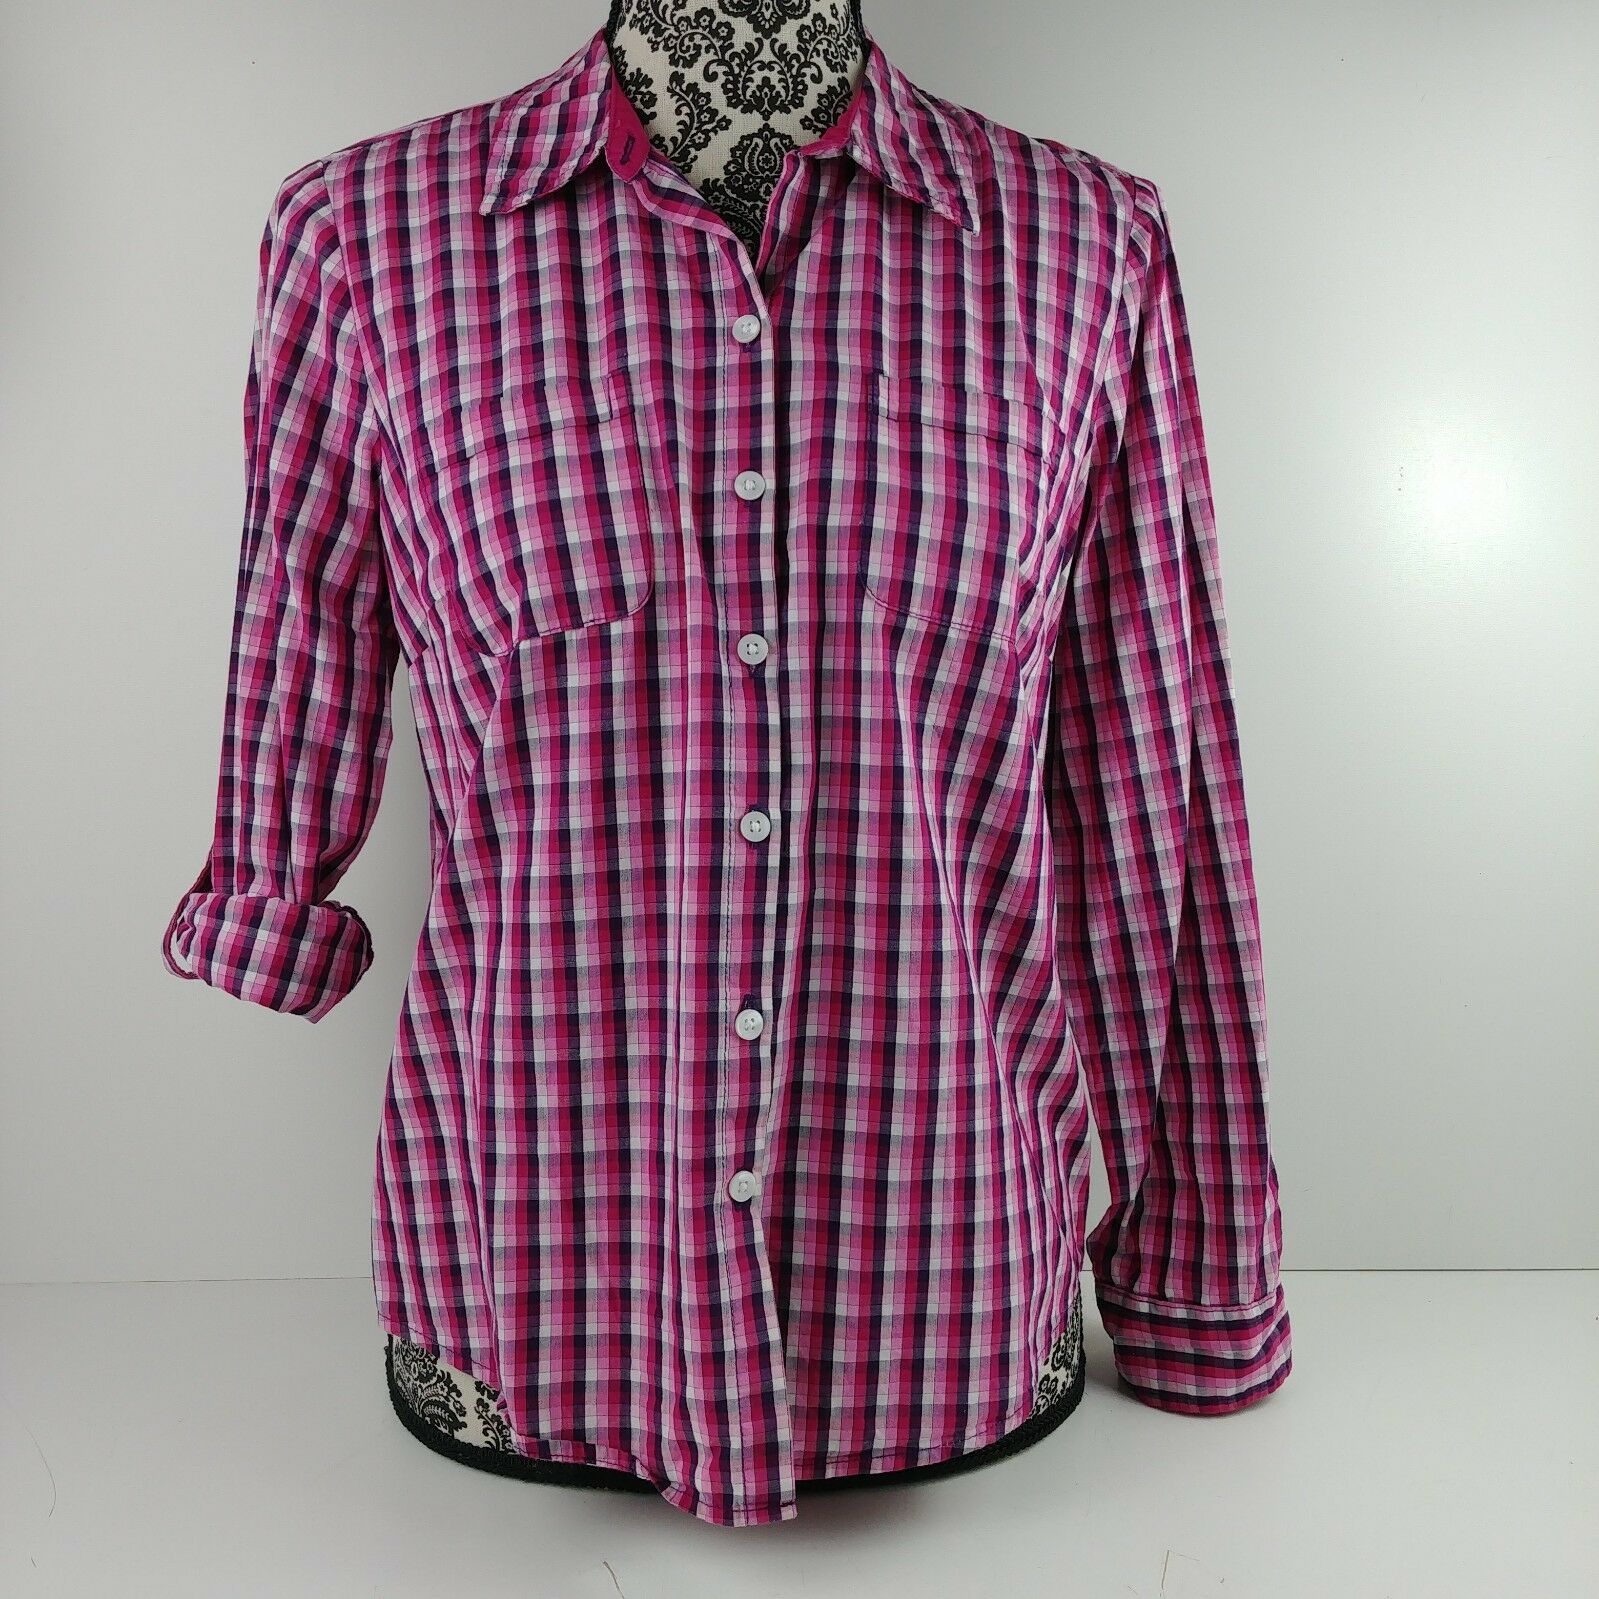 4d9b27abb4d75f Croft & Barrow Womens Pink Plaid Button Down Long Sleeve Blouse ...